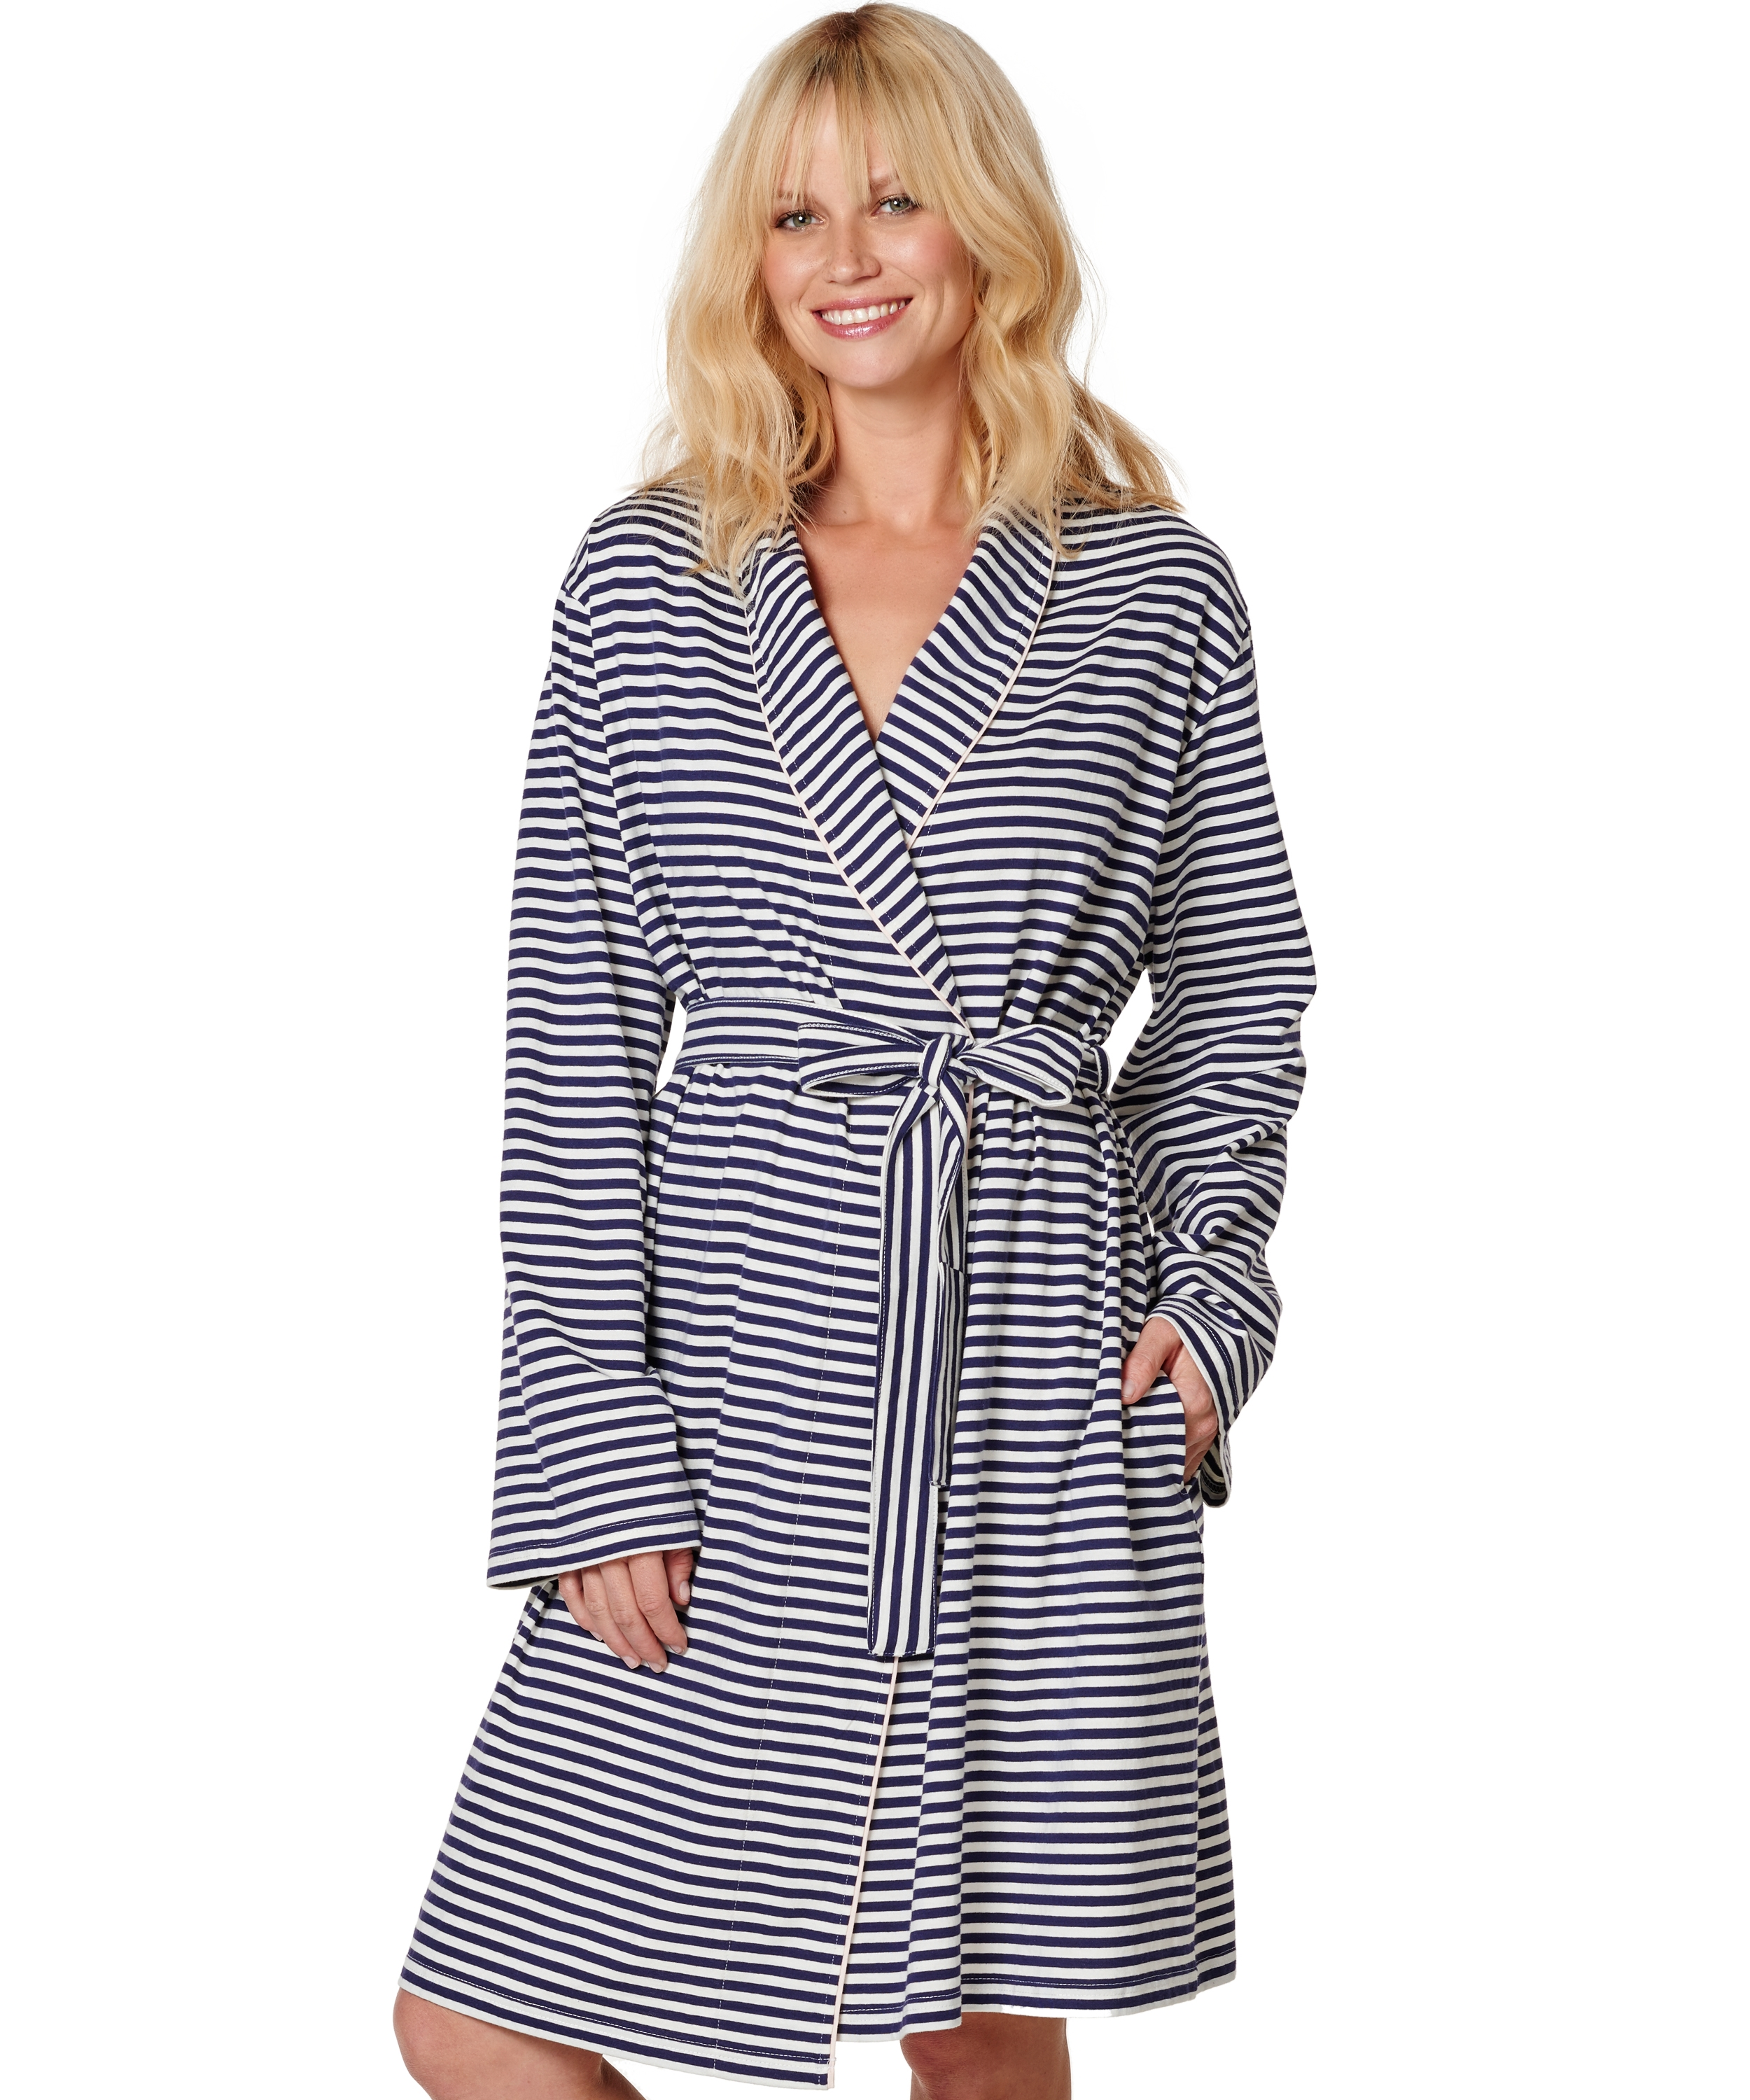 Bathrobe Jersey Robe, Blauw, main